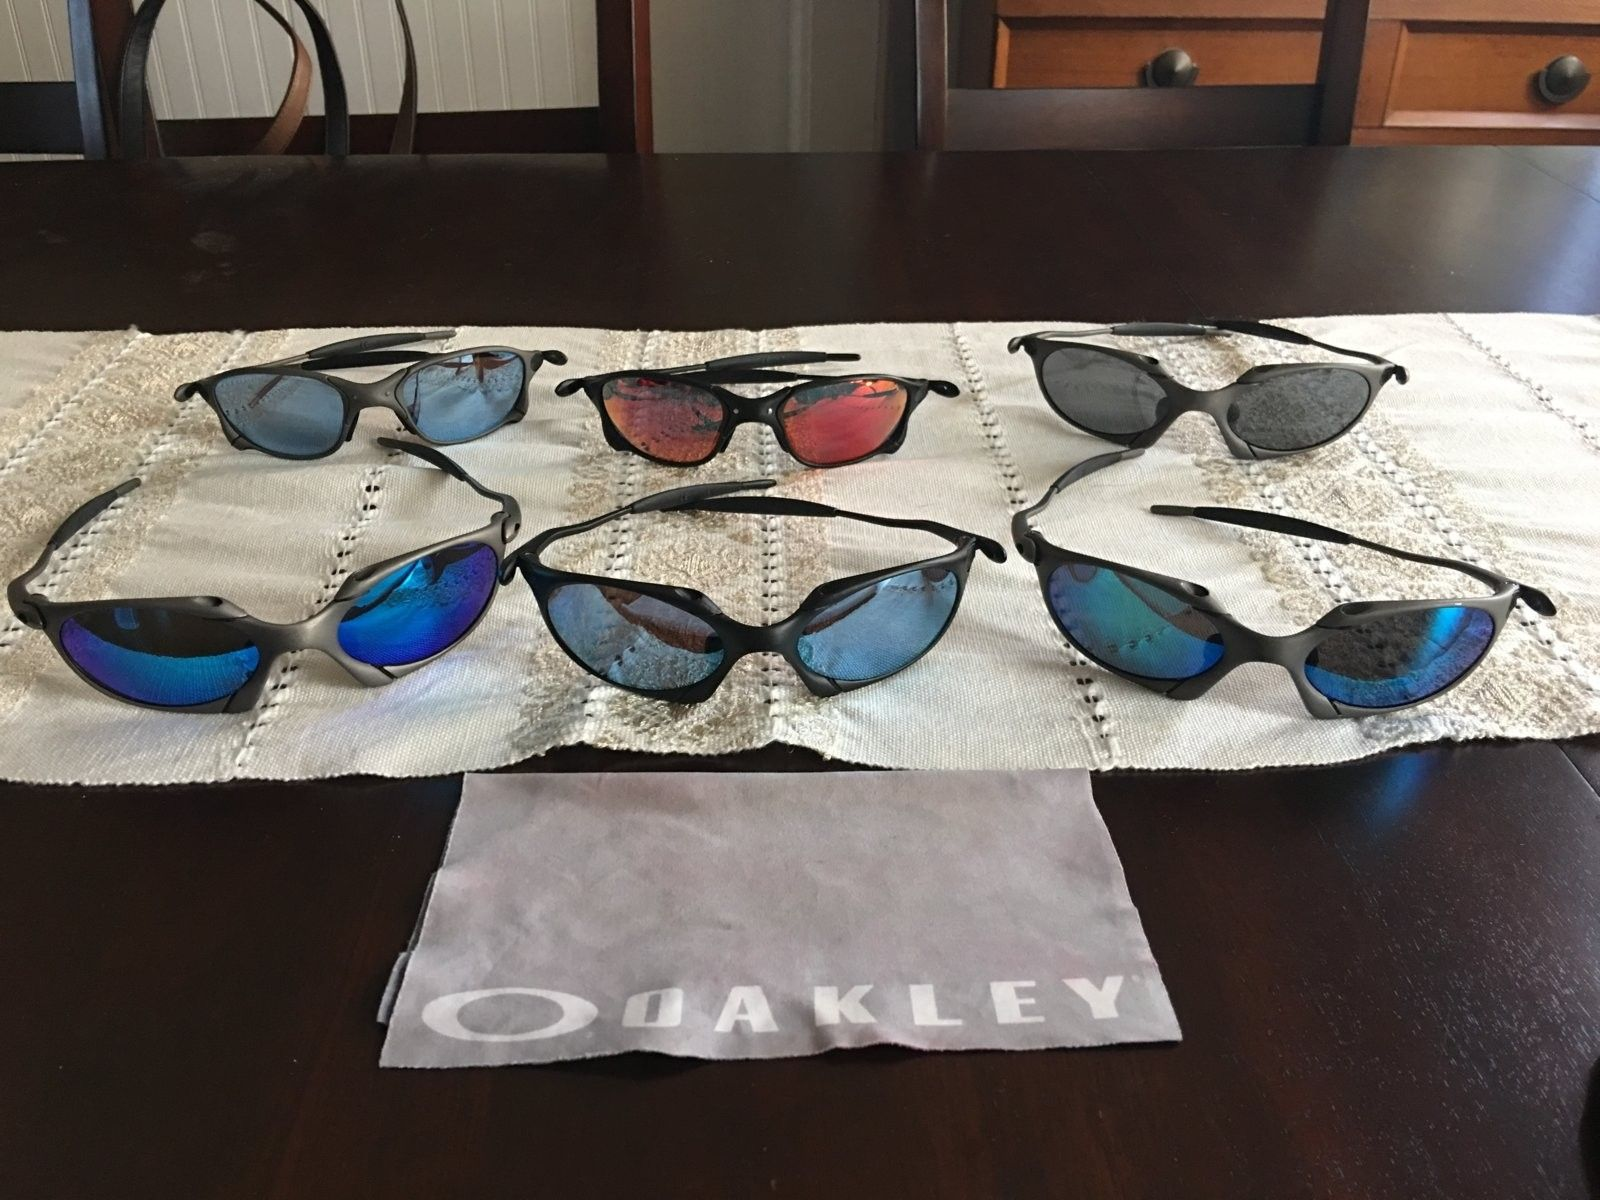 My name is Jay and I have a Oakley XMetal addiction - image.jpeg